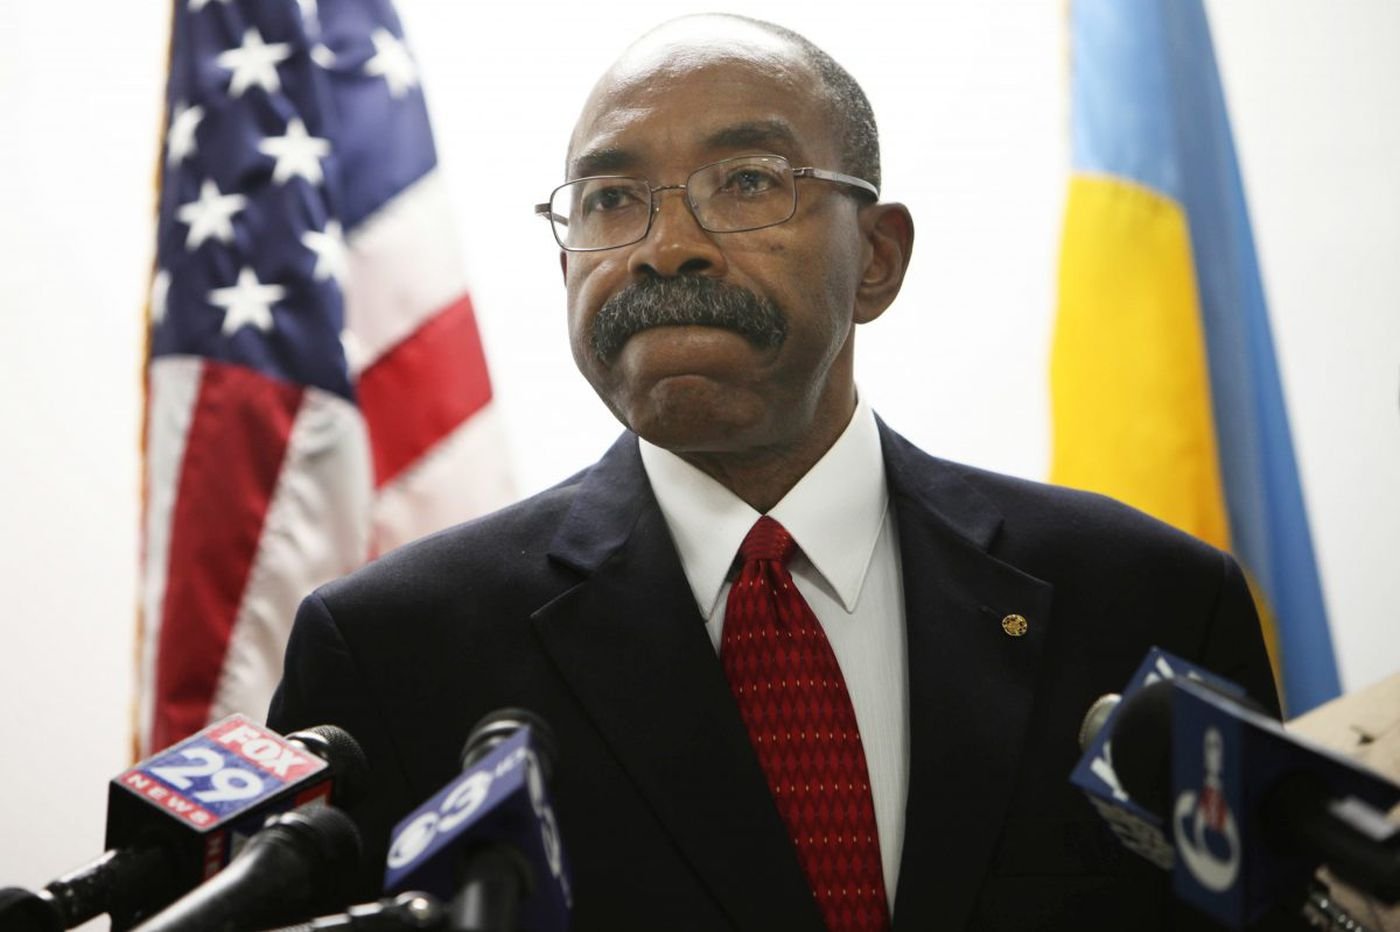 Ex-Philly Sheriff John Green's bribery trial opens with attack on his successor